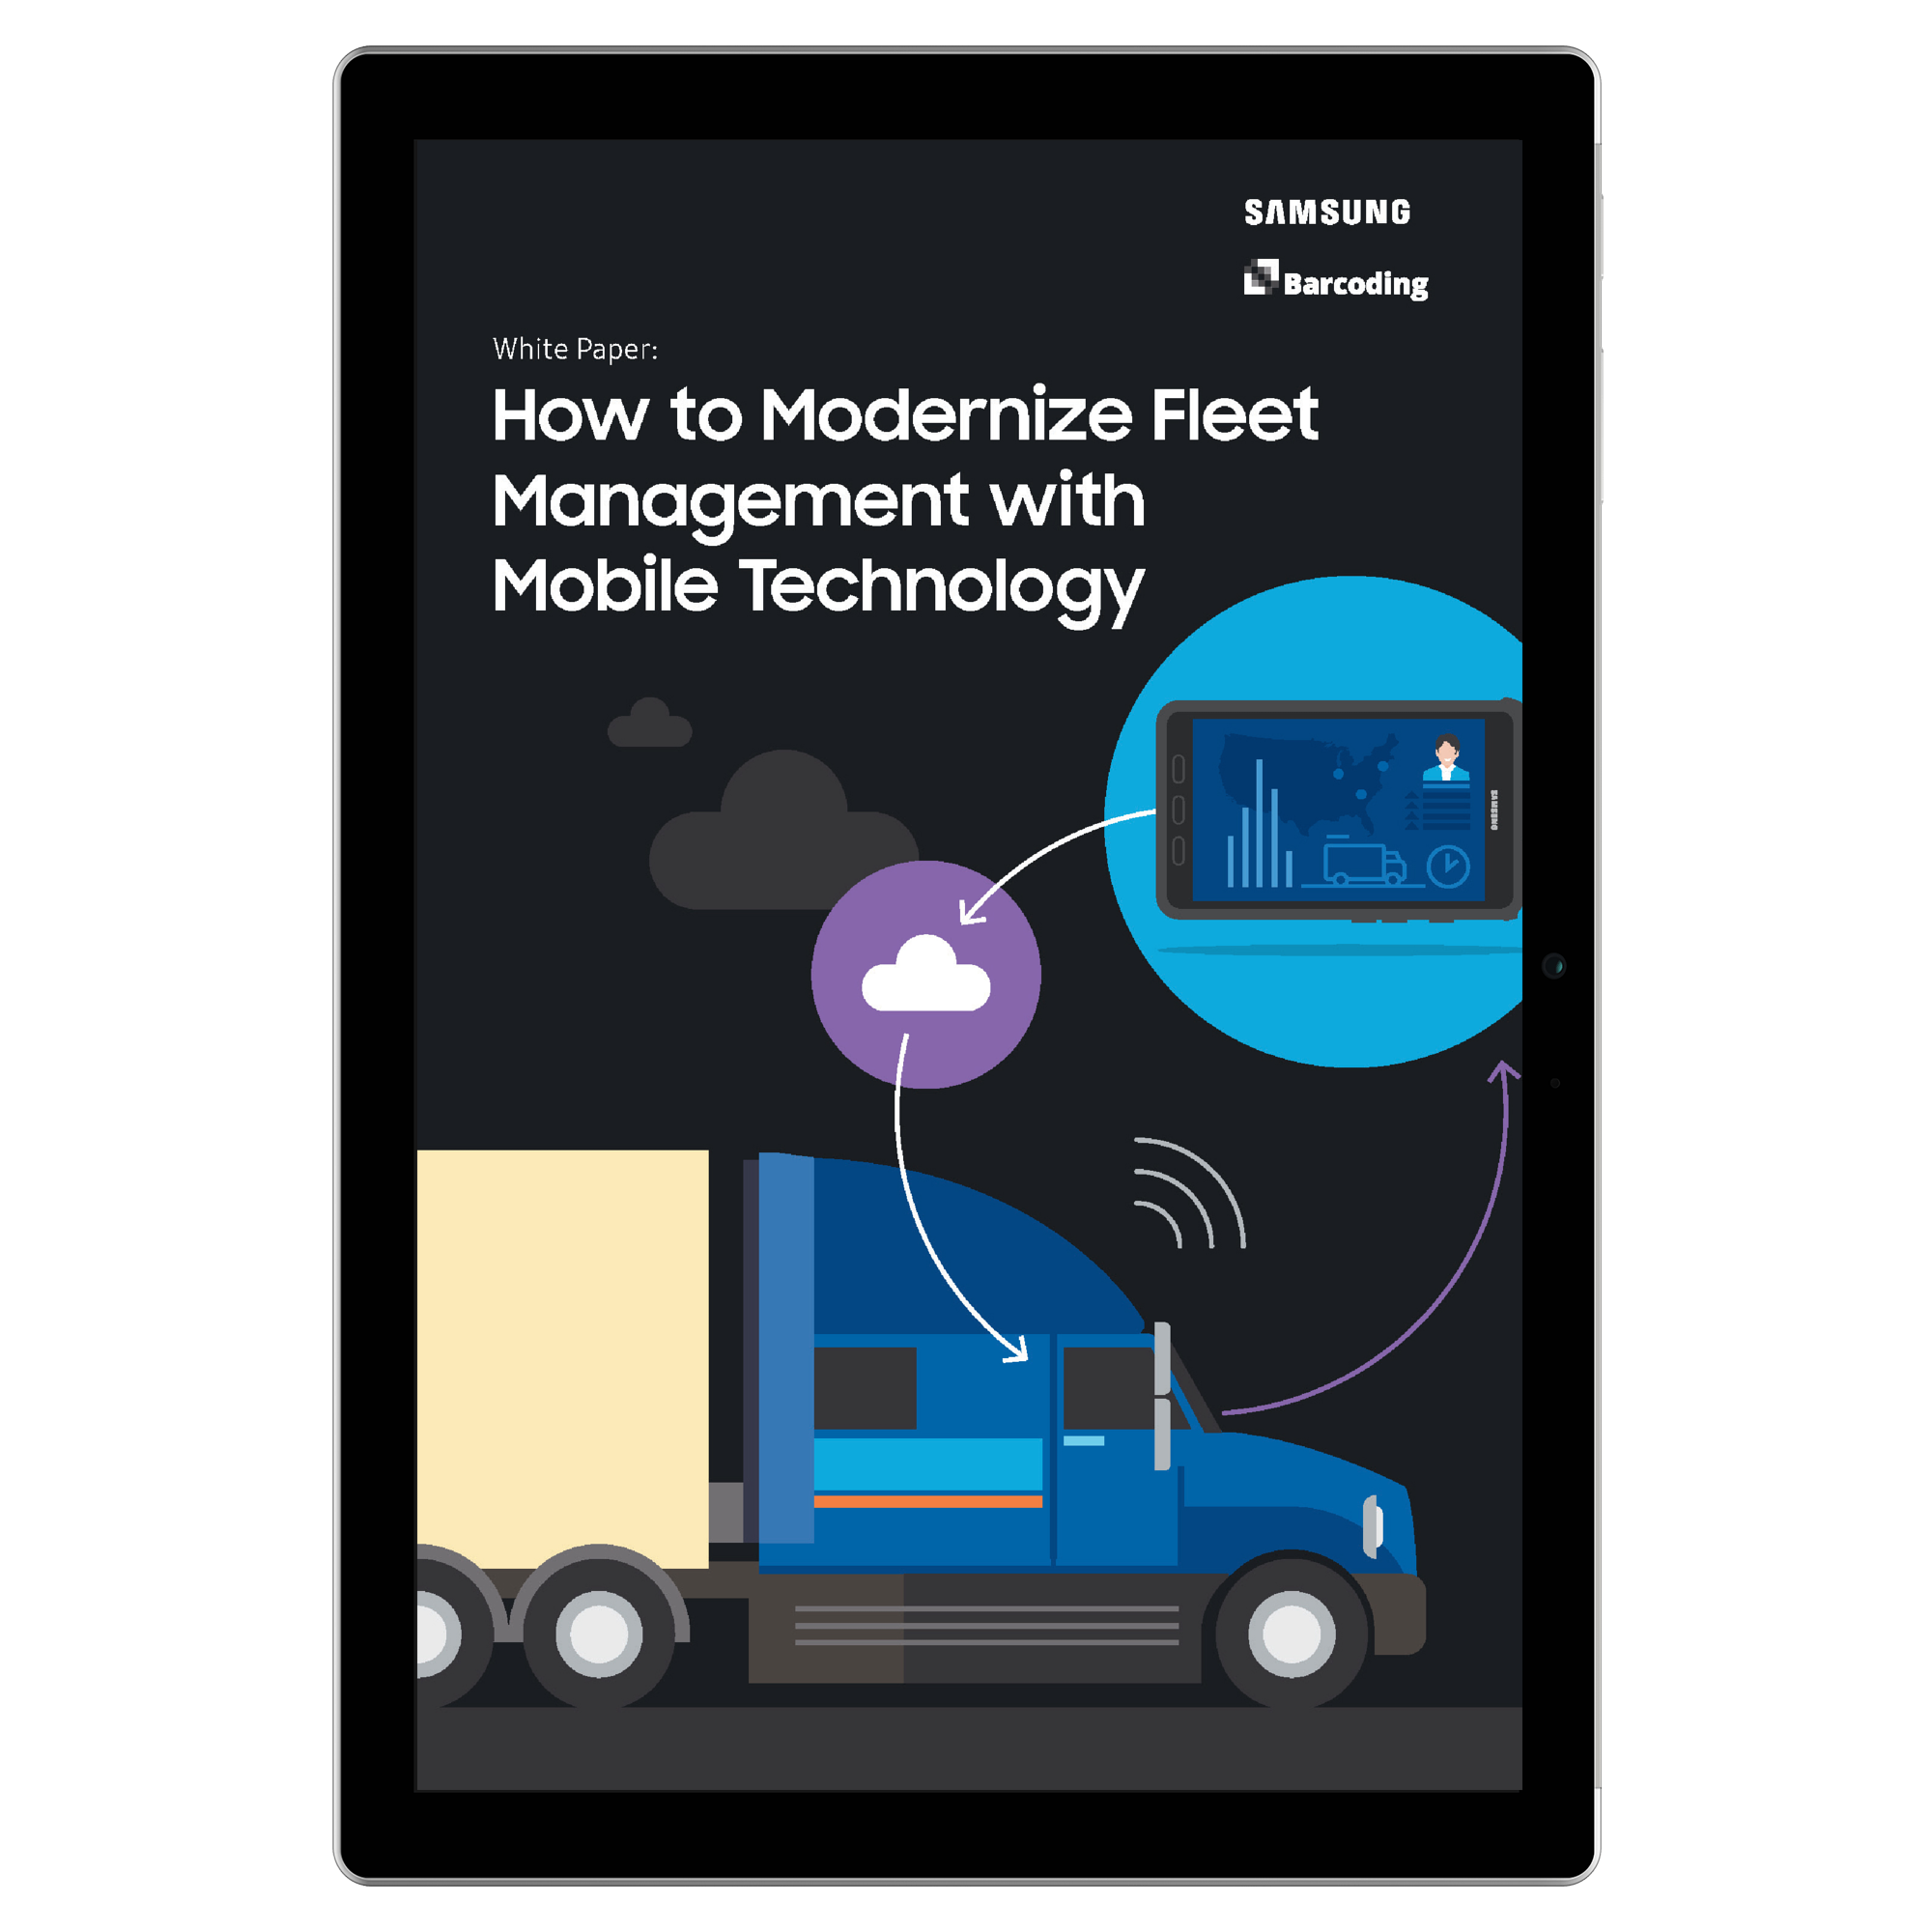 How to Modernize Fleet Management with Mobile Technology